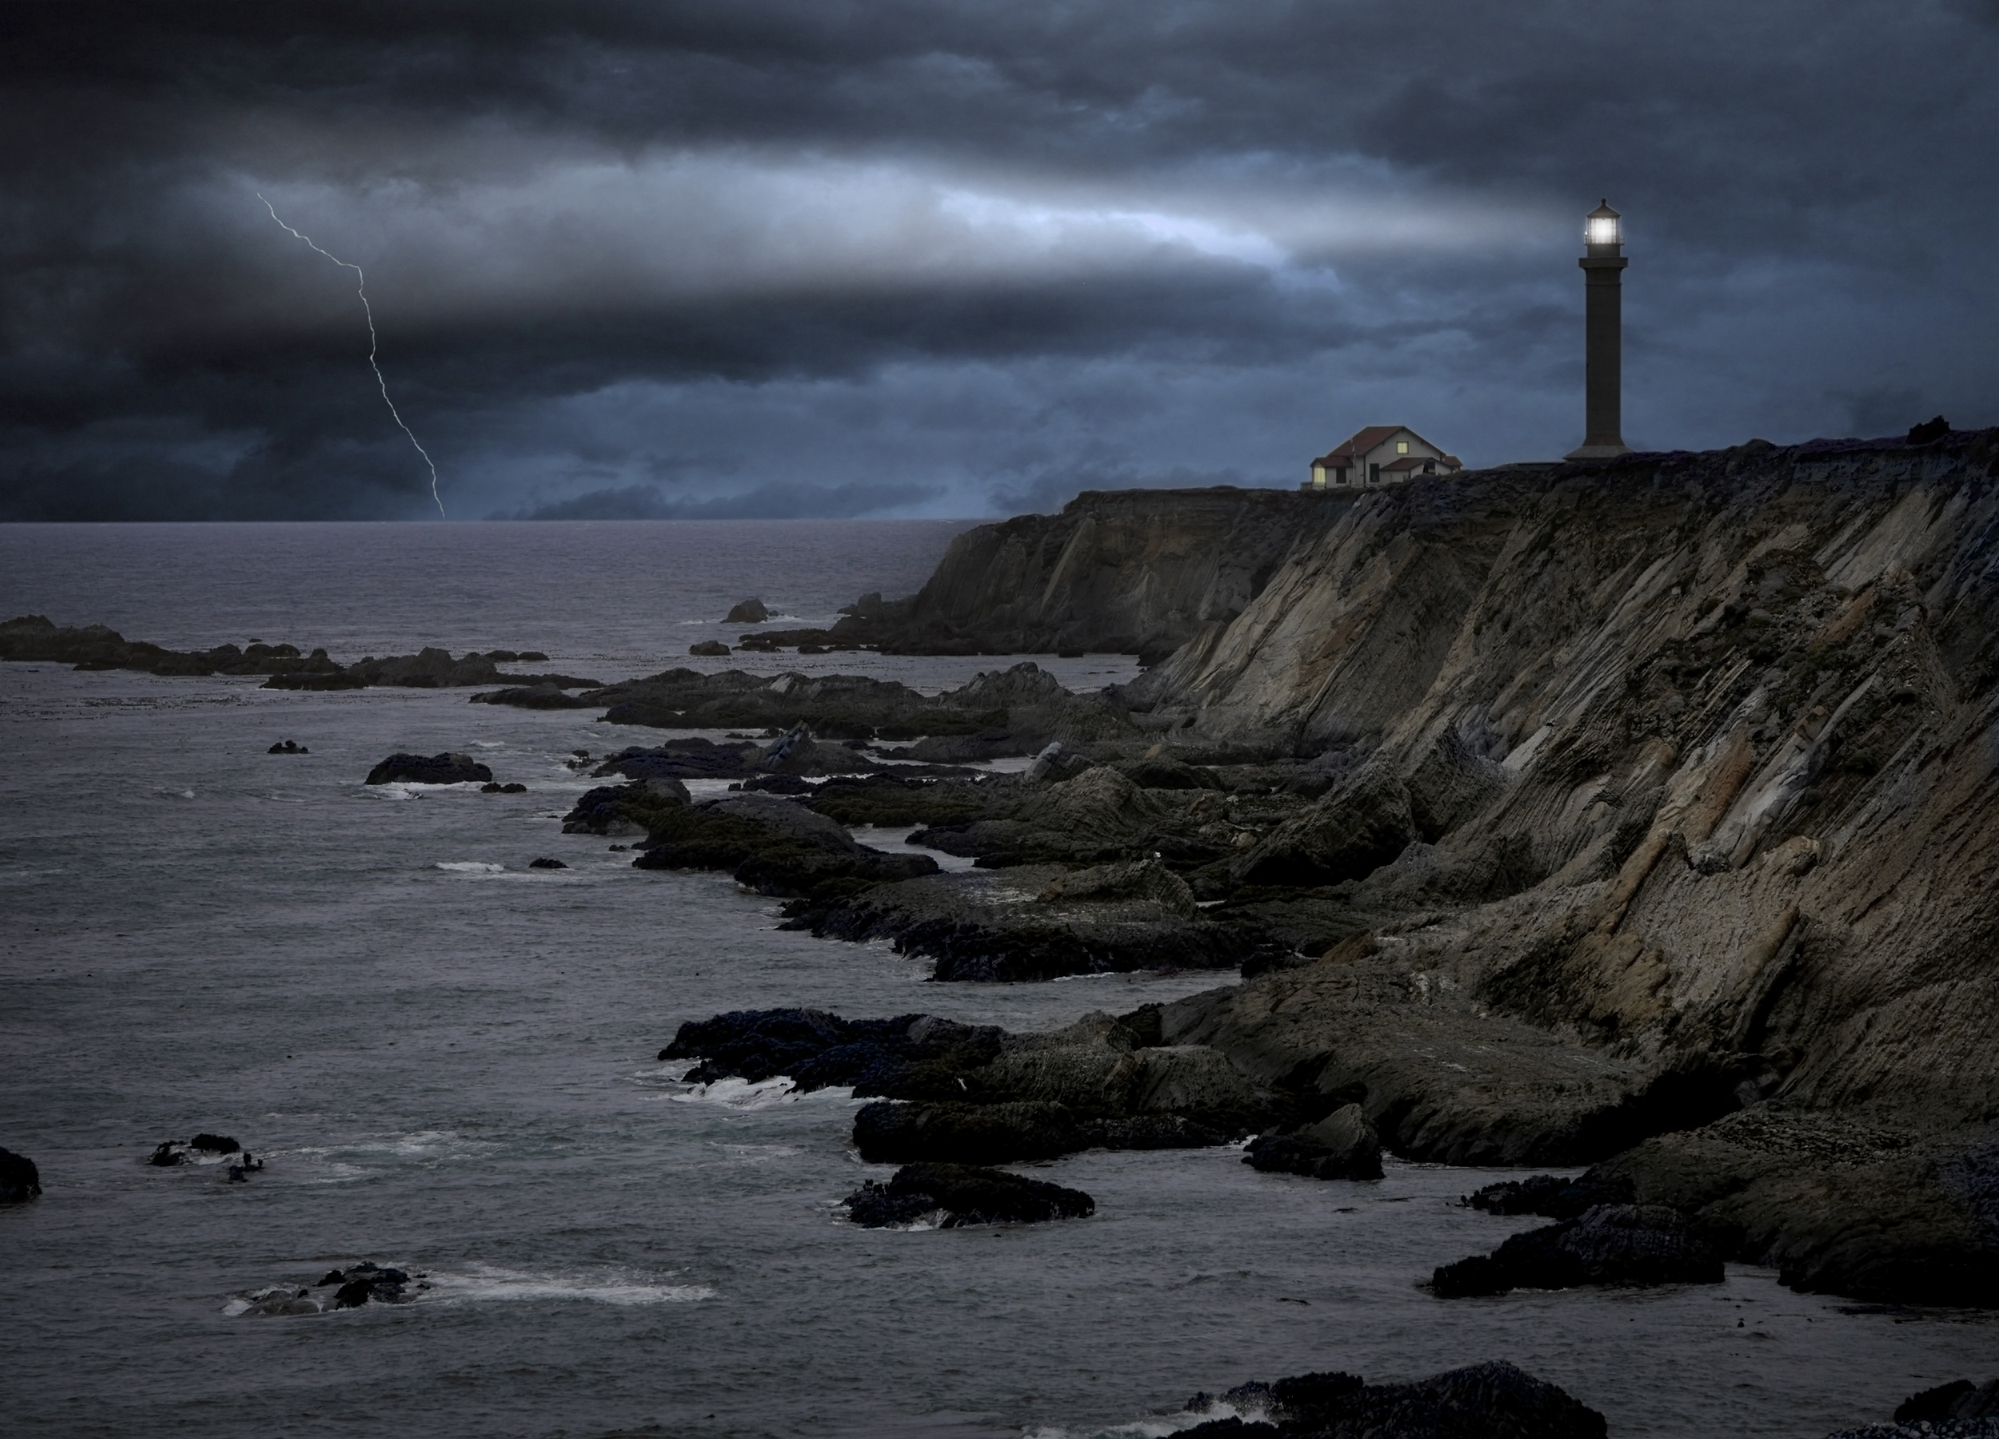 stormy ocean and lighthouse evoking thriller book feel